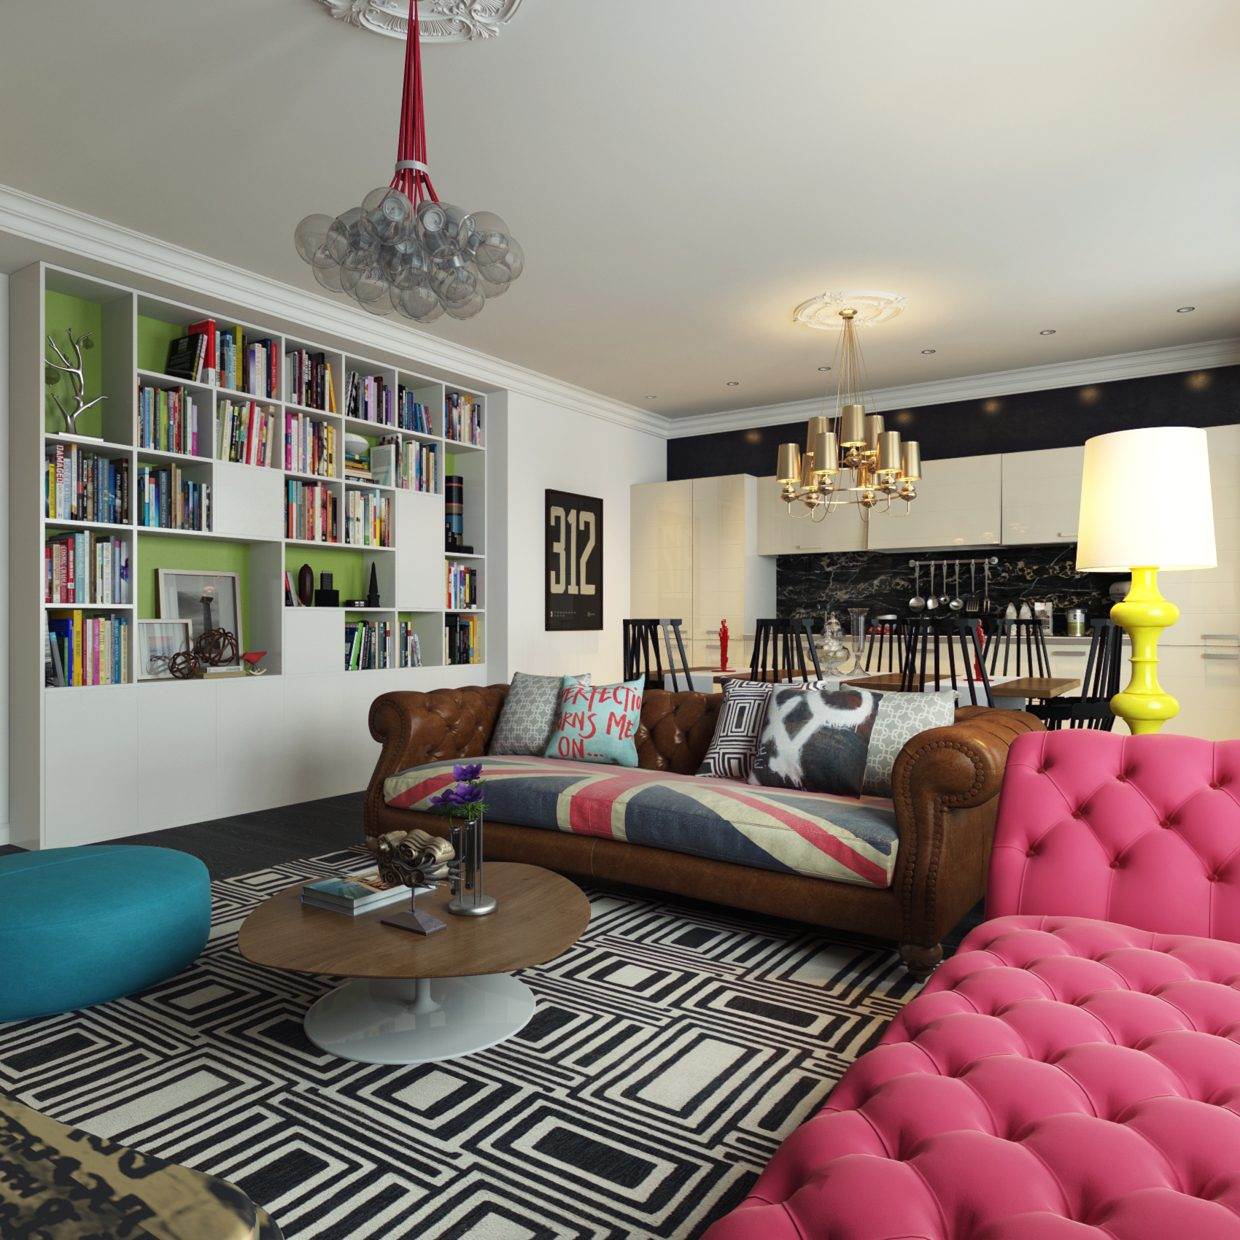 Interior Design Ideas For Home: Modern Pop Art Style Apartment